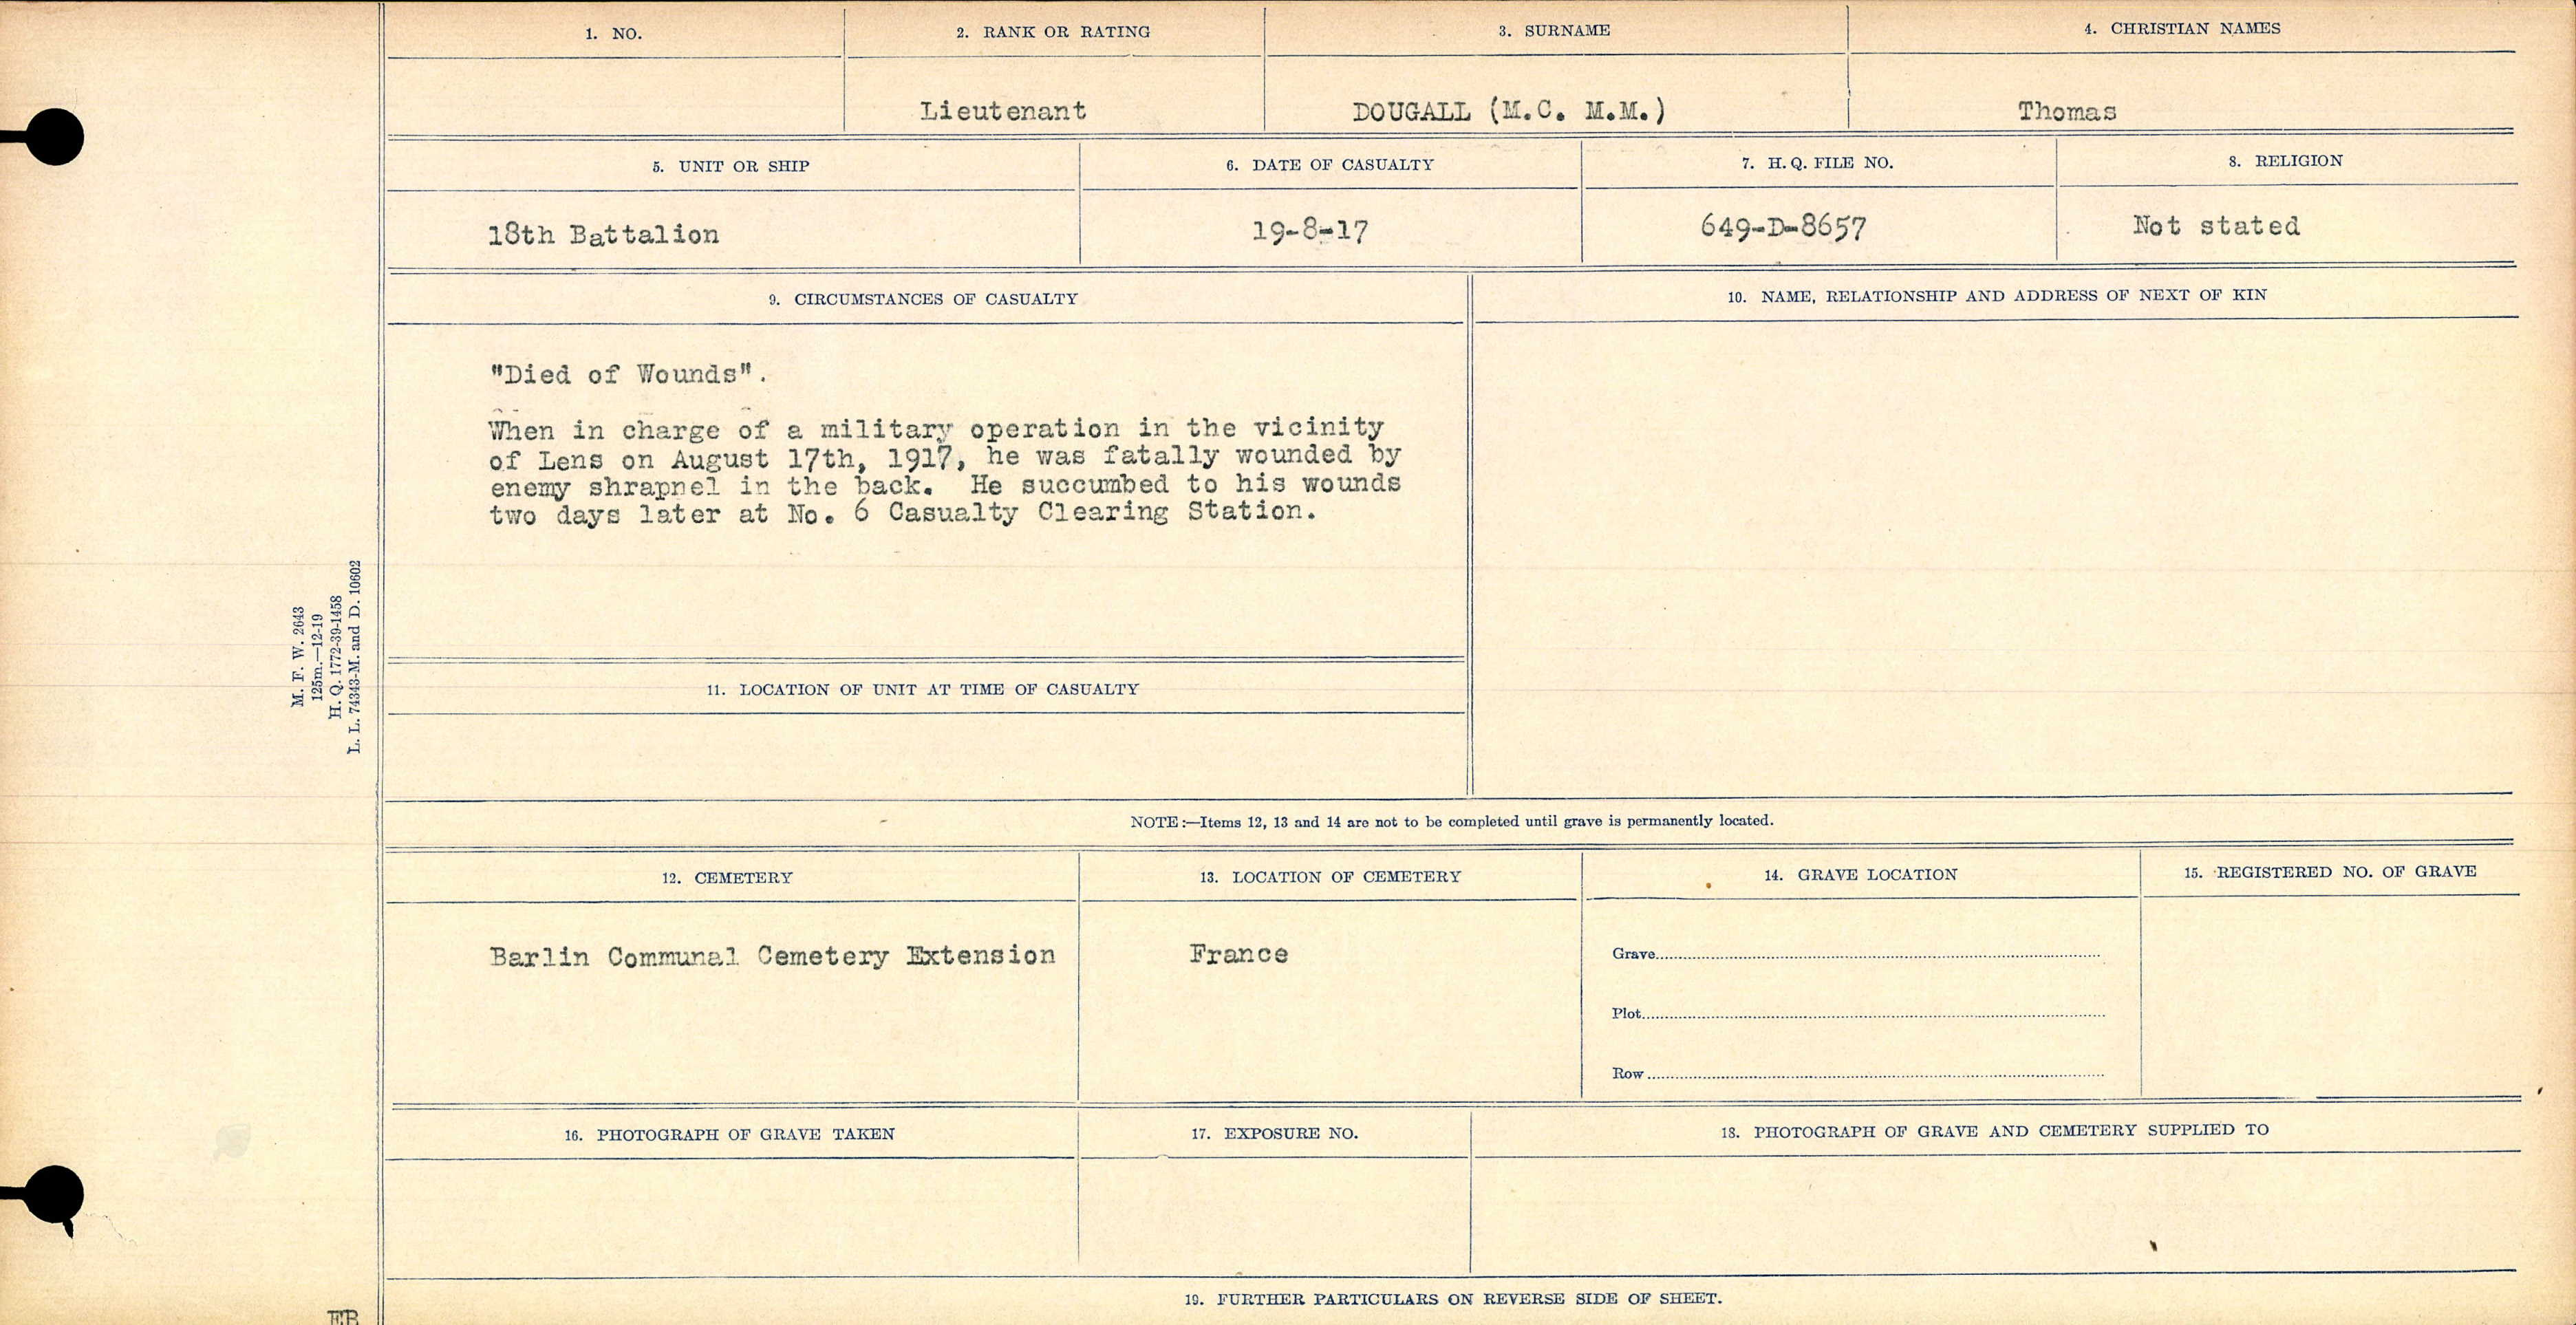 """Circumstances of Death– Circumstances of Death Register: """"Died of Wounds""""  When in charge of a military operation in the vicinity of Lens on August 17th, 1917, he was fatally wound by enemy shrapnel in the back. He succumbed to his wounds to days later at No. 6 Casualty Clearing Station."""